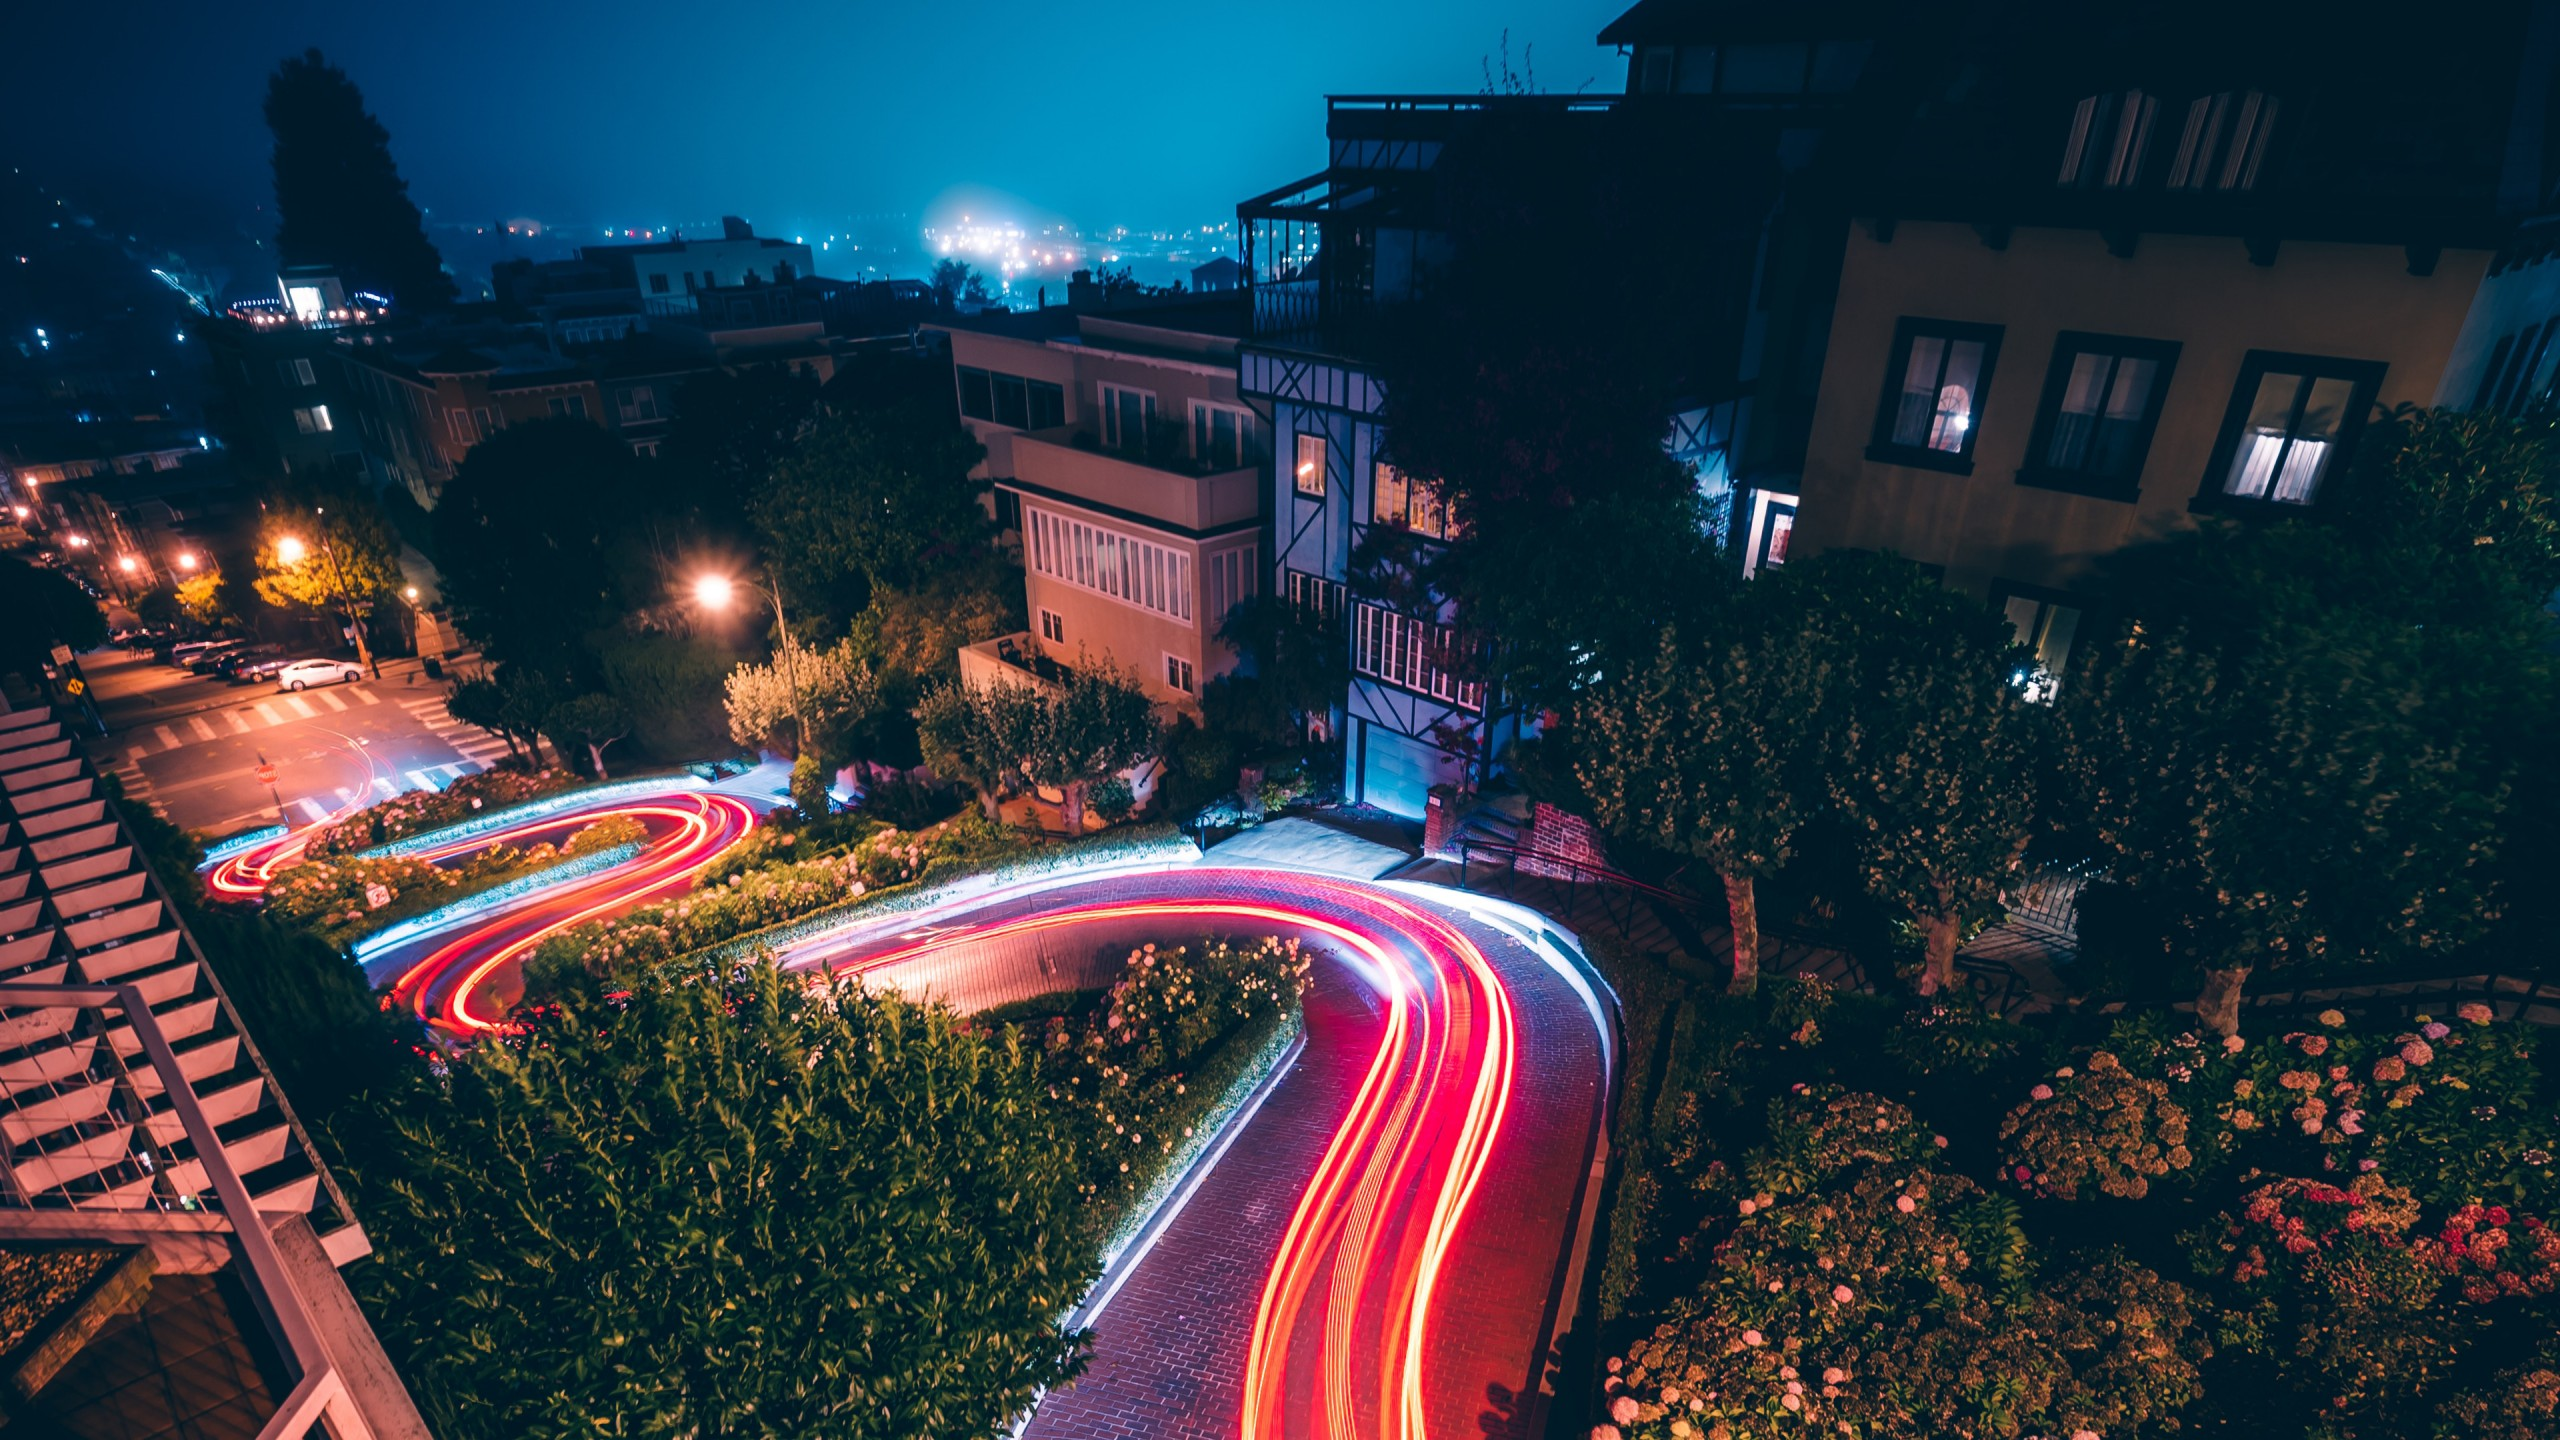 Cute Wallpaper For Iphone 6 Hd City Night Traffic Lights 4k Wallpapers Hd Wallpapers